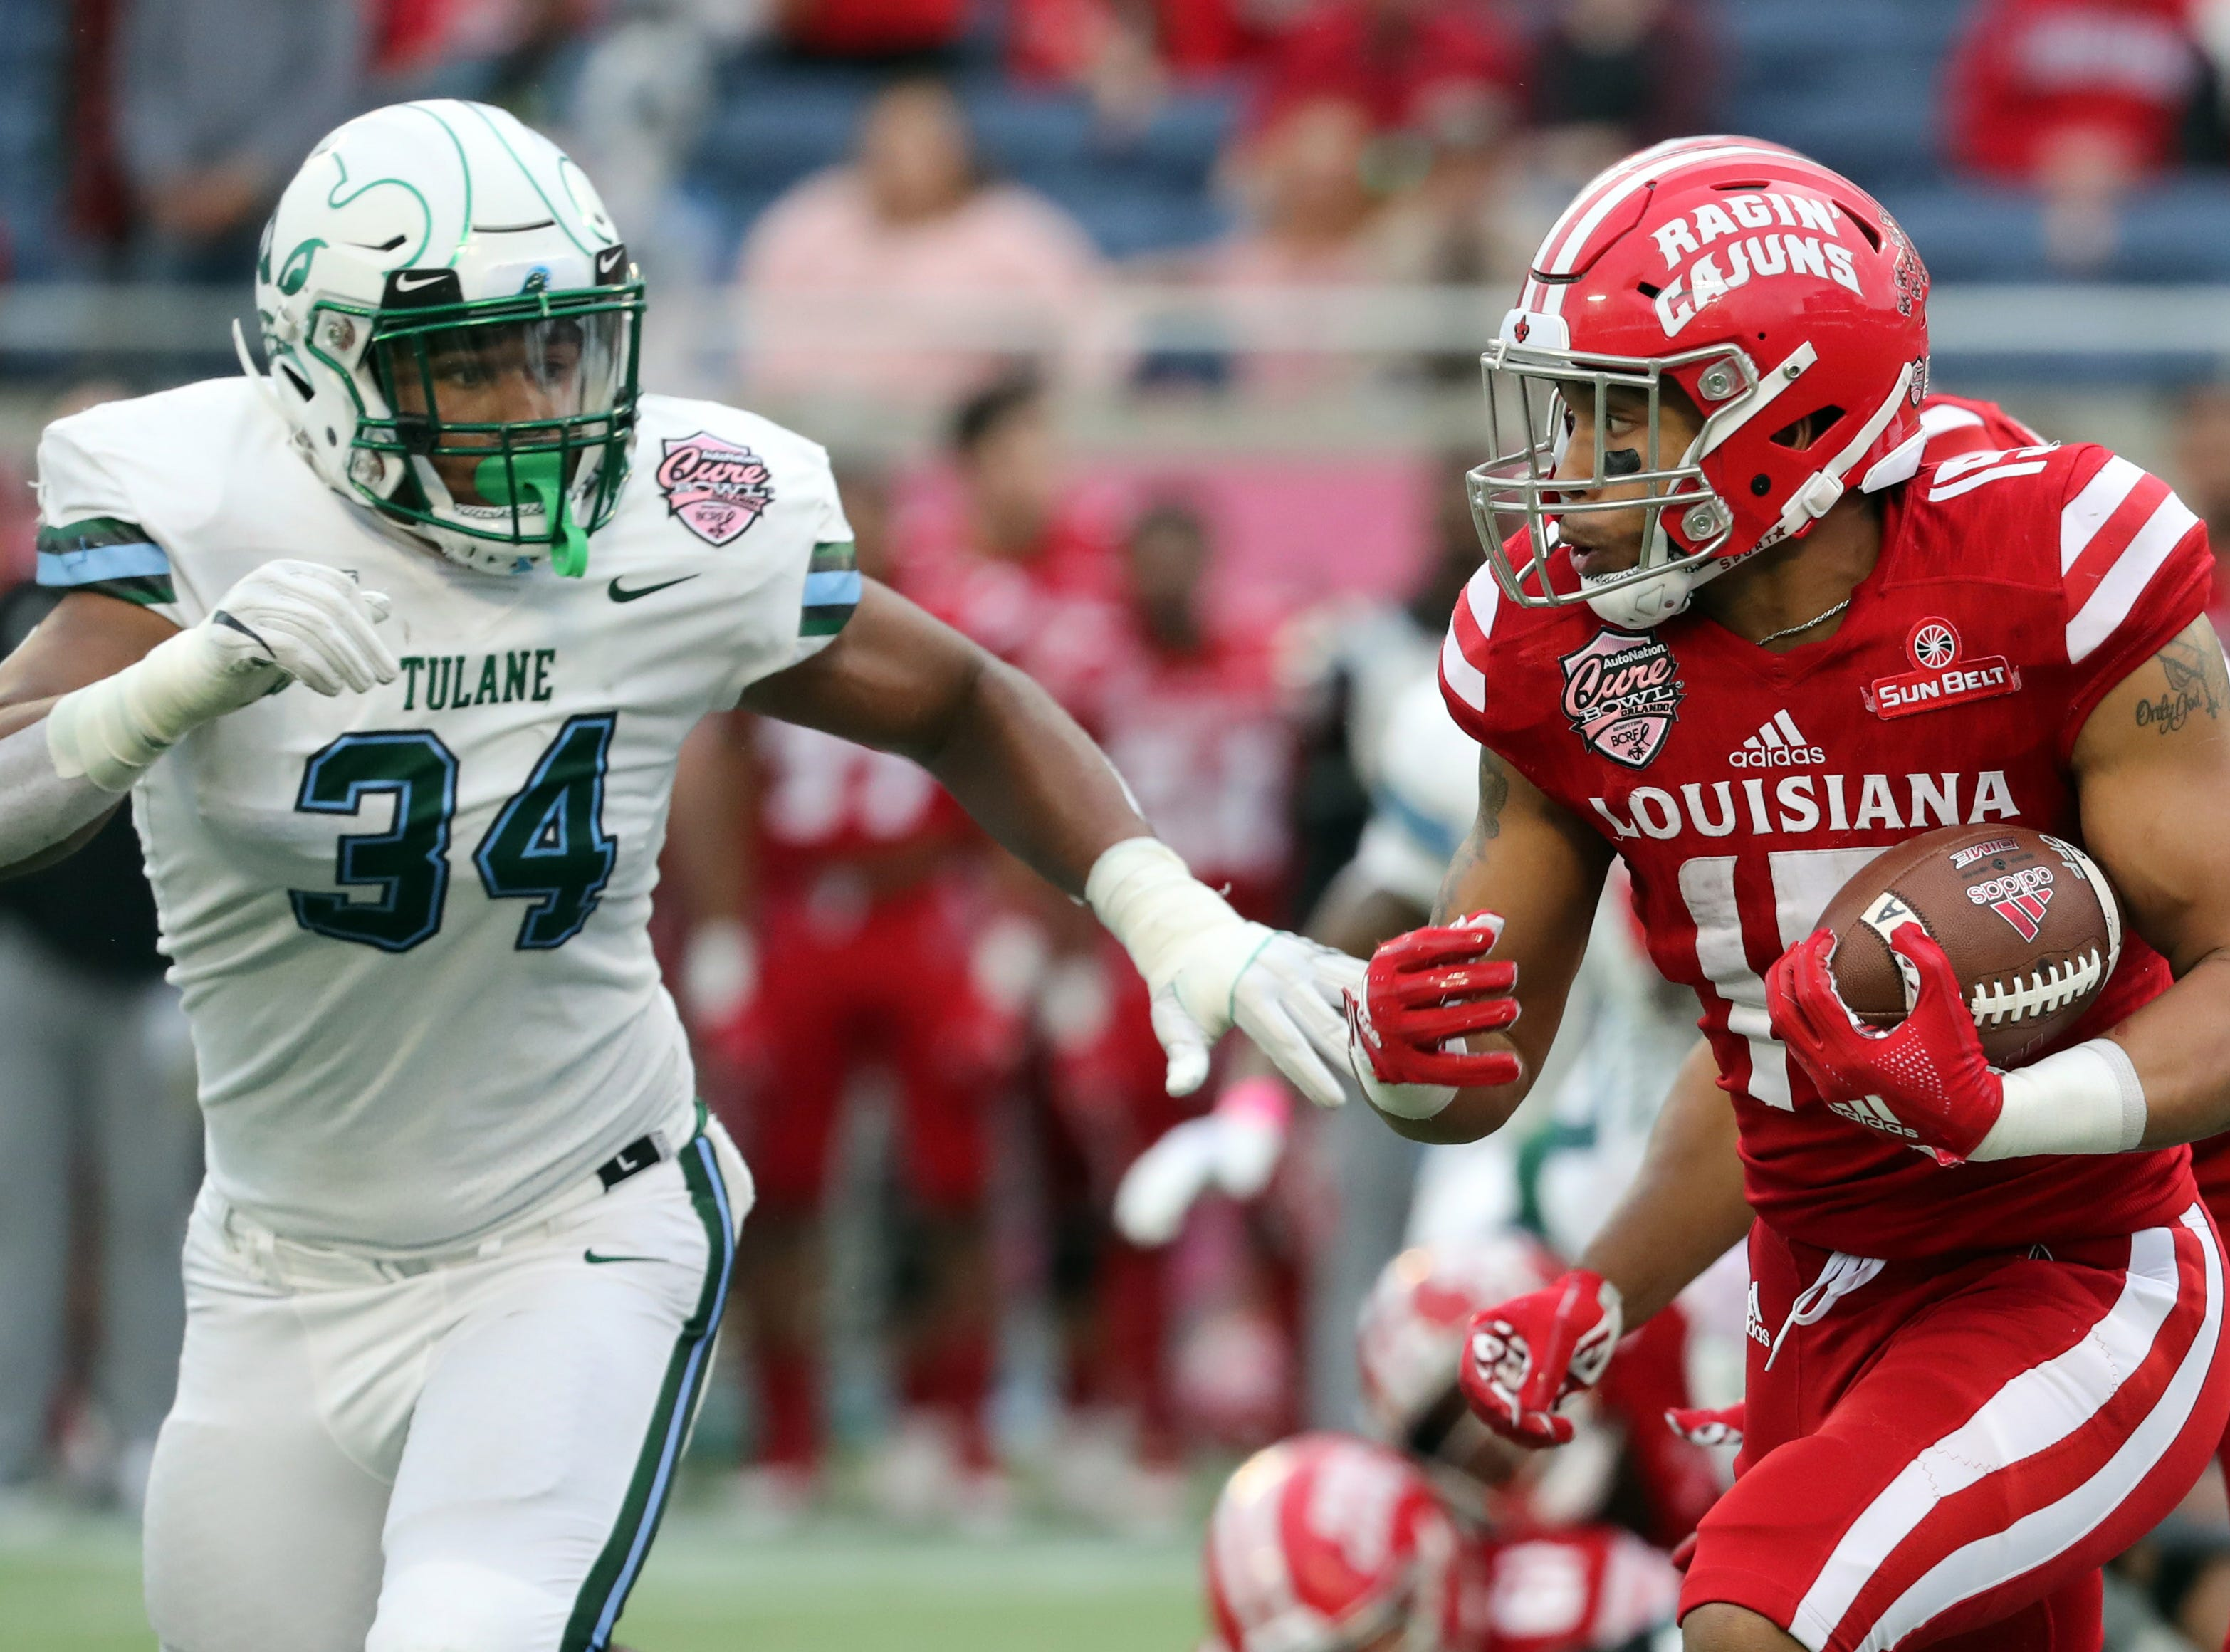 Dec 15, 2018; Orlando, FL, USA; Louisiana-Lafayette Ragin Cajuns running back Elijah Mitchell (15) runs with the ball as Tulane Green Wave defensive end Patrick Johnson (34) defends during the first half at Camping World Stadium. Mandatory Credit: Kim Klement-USA TODAY Sports